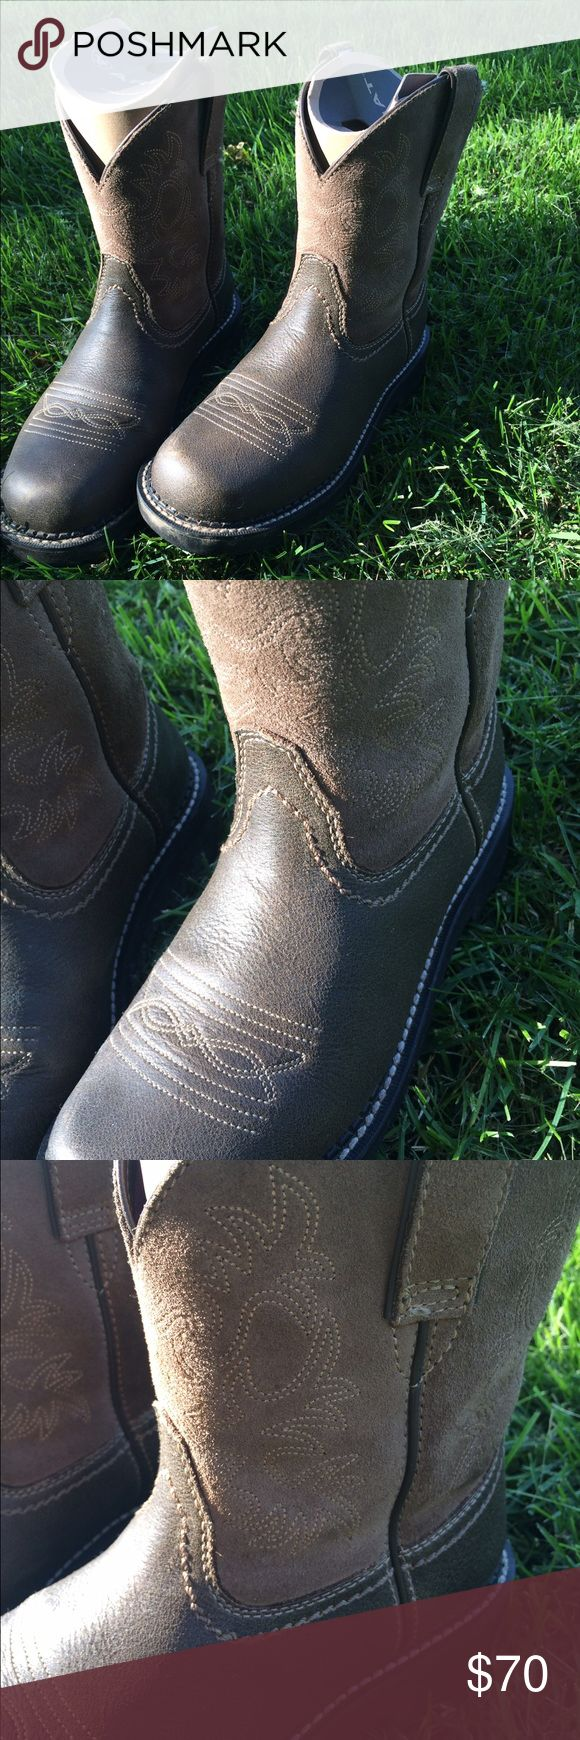 Ariat Fatbaby Cowboy Boots The perfect boots for work on the farm, or a concert that drags on for hours. Soles are in perfect shape, and leather has been previously treated. These boots will last you for years of wear. Ariat Shoes Ankle Boots & Booties